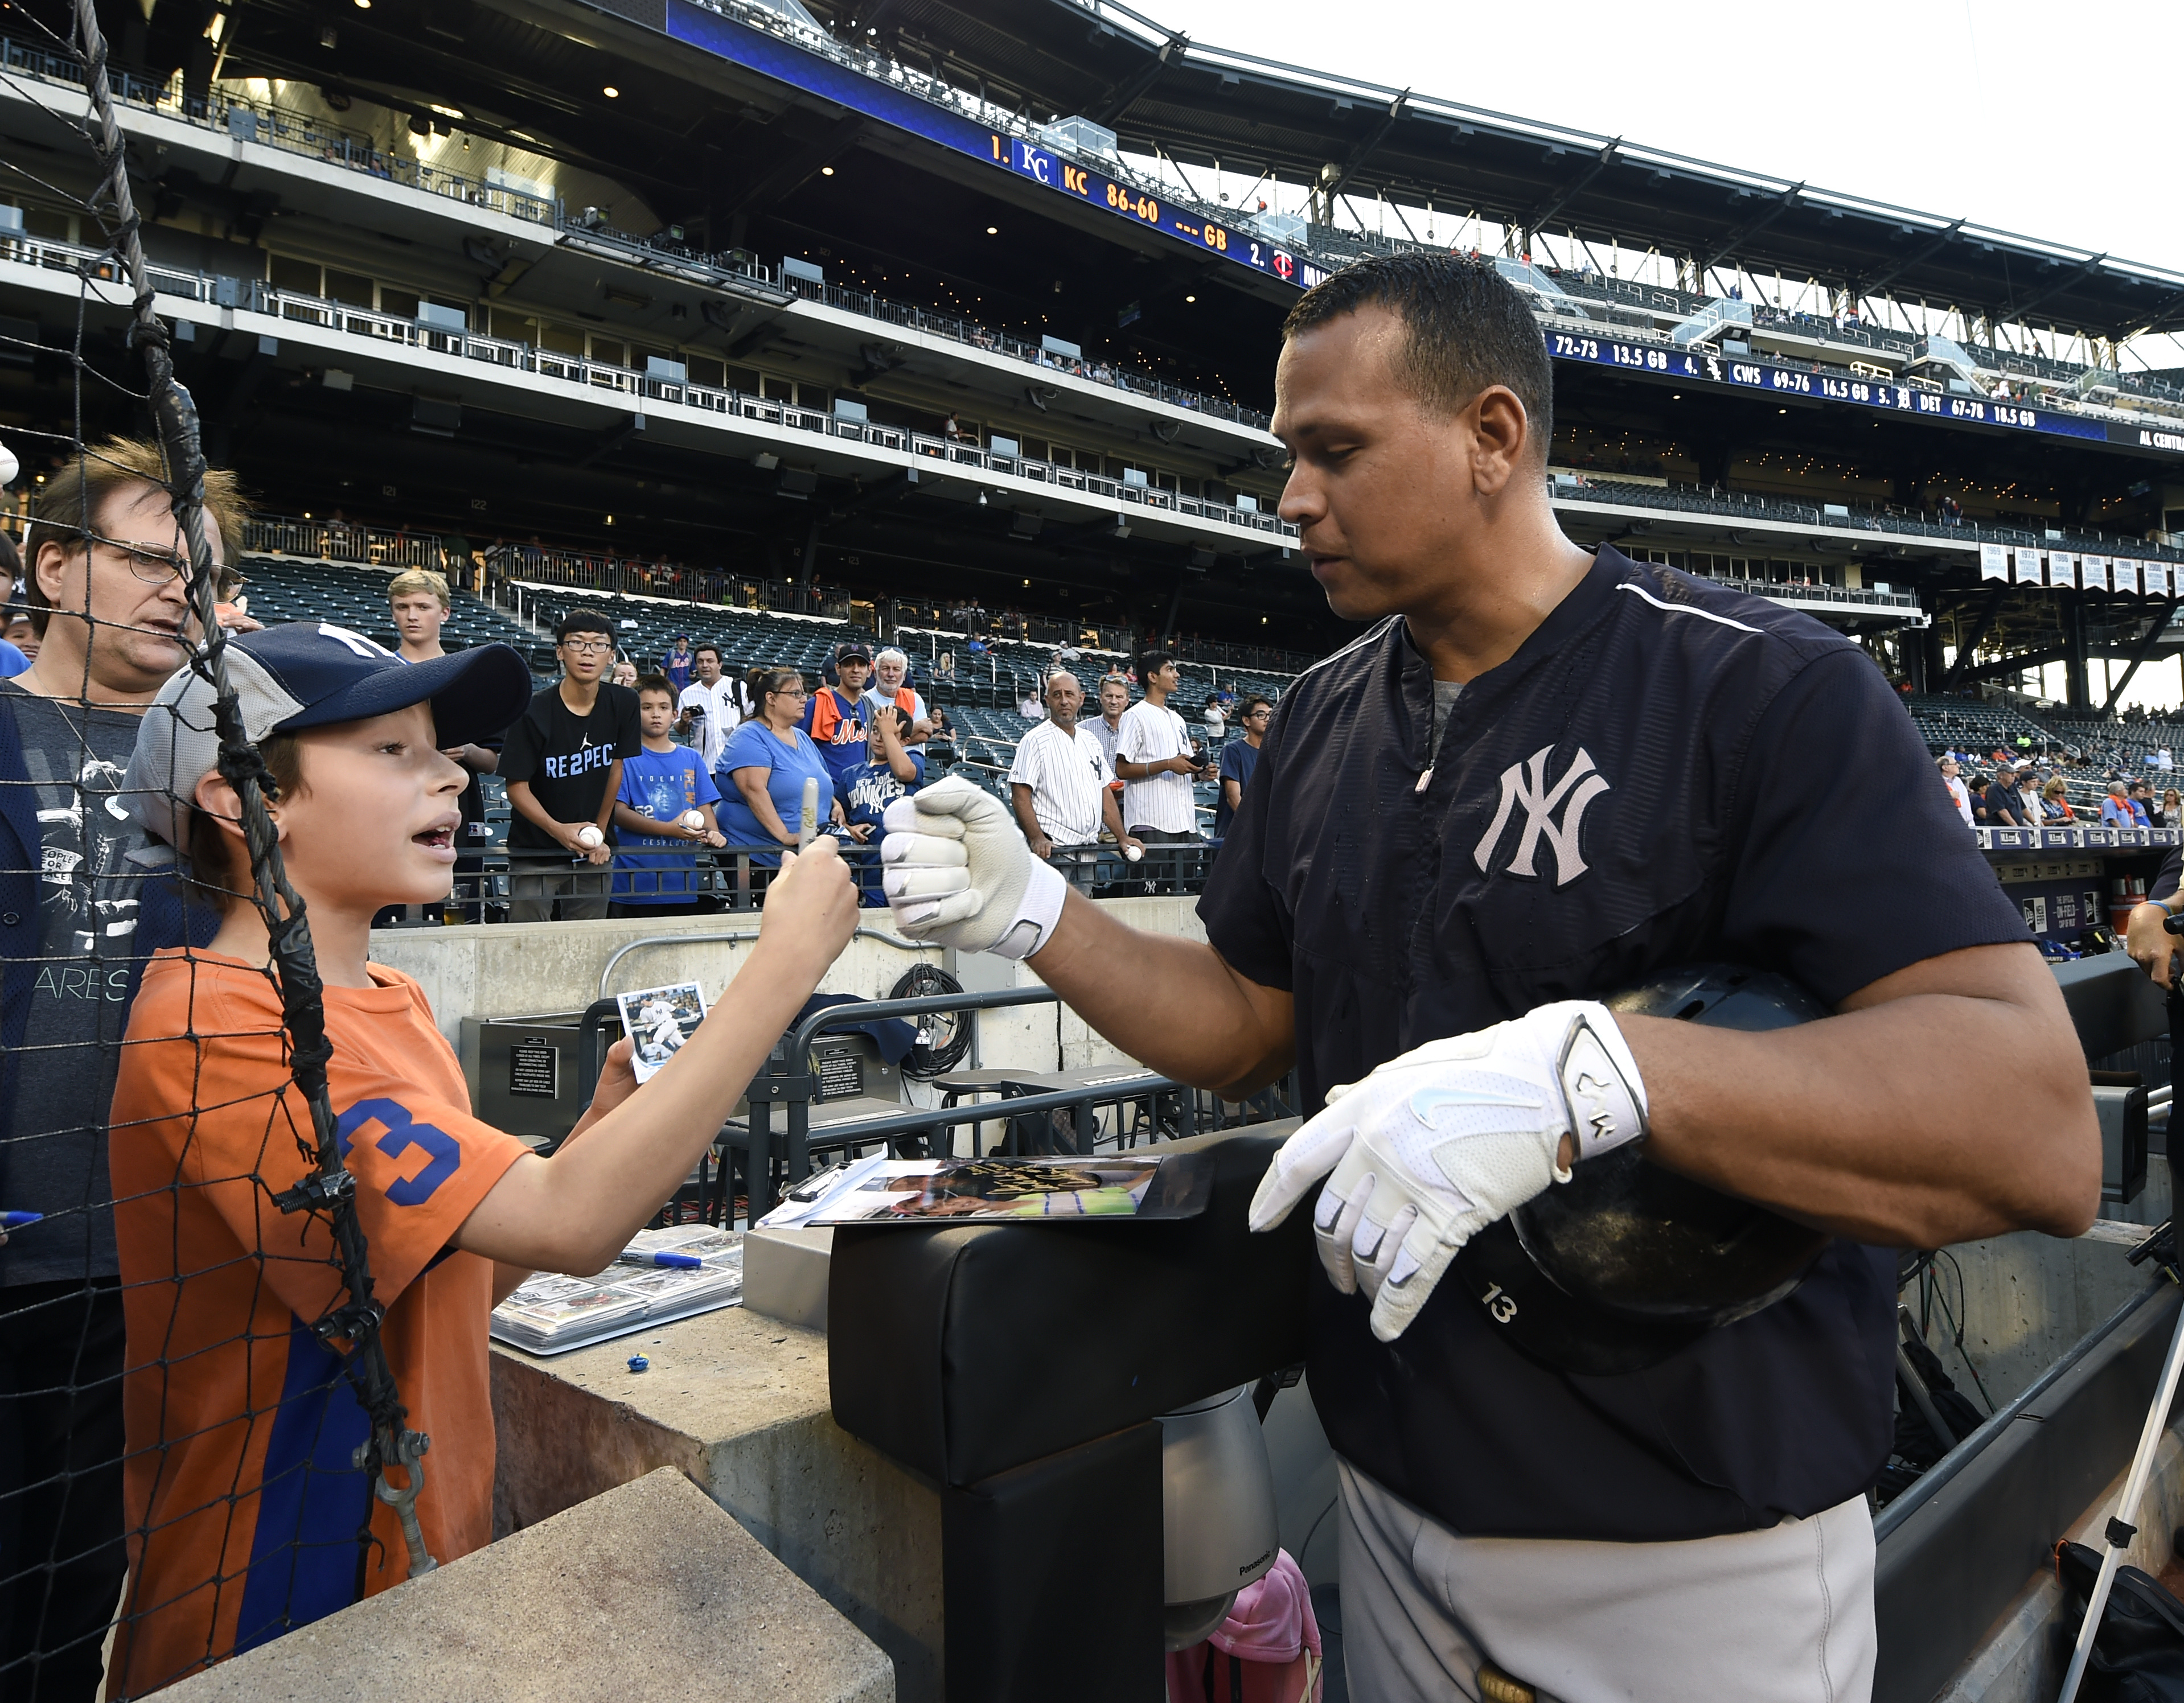 New York Yankees' Alex Rodriguez pumps fists with Alex Weissman, 11, of Livingston, N.J. after signing an autograph for him during batting practice before the  interleague baseball game between the Yankees and the New York Mets at Citi Field, Friday, Sept